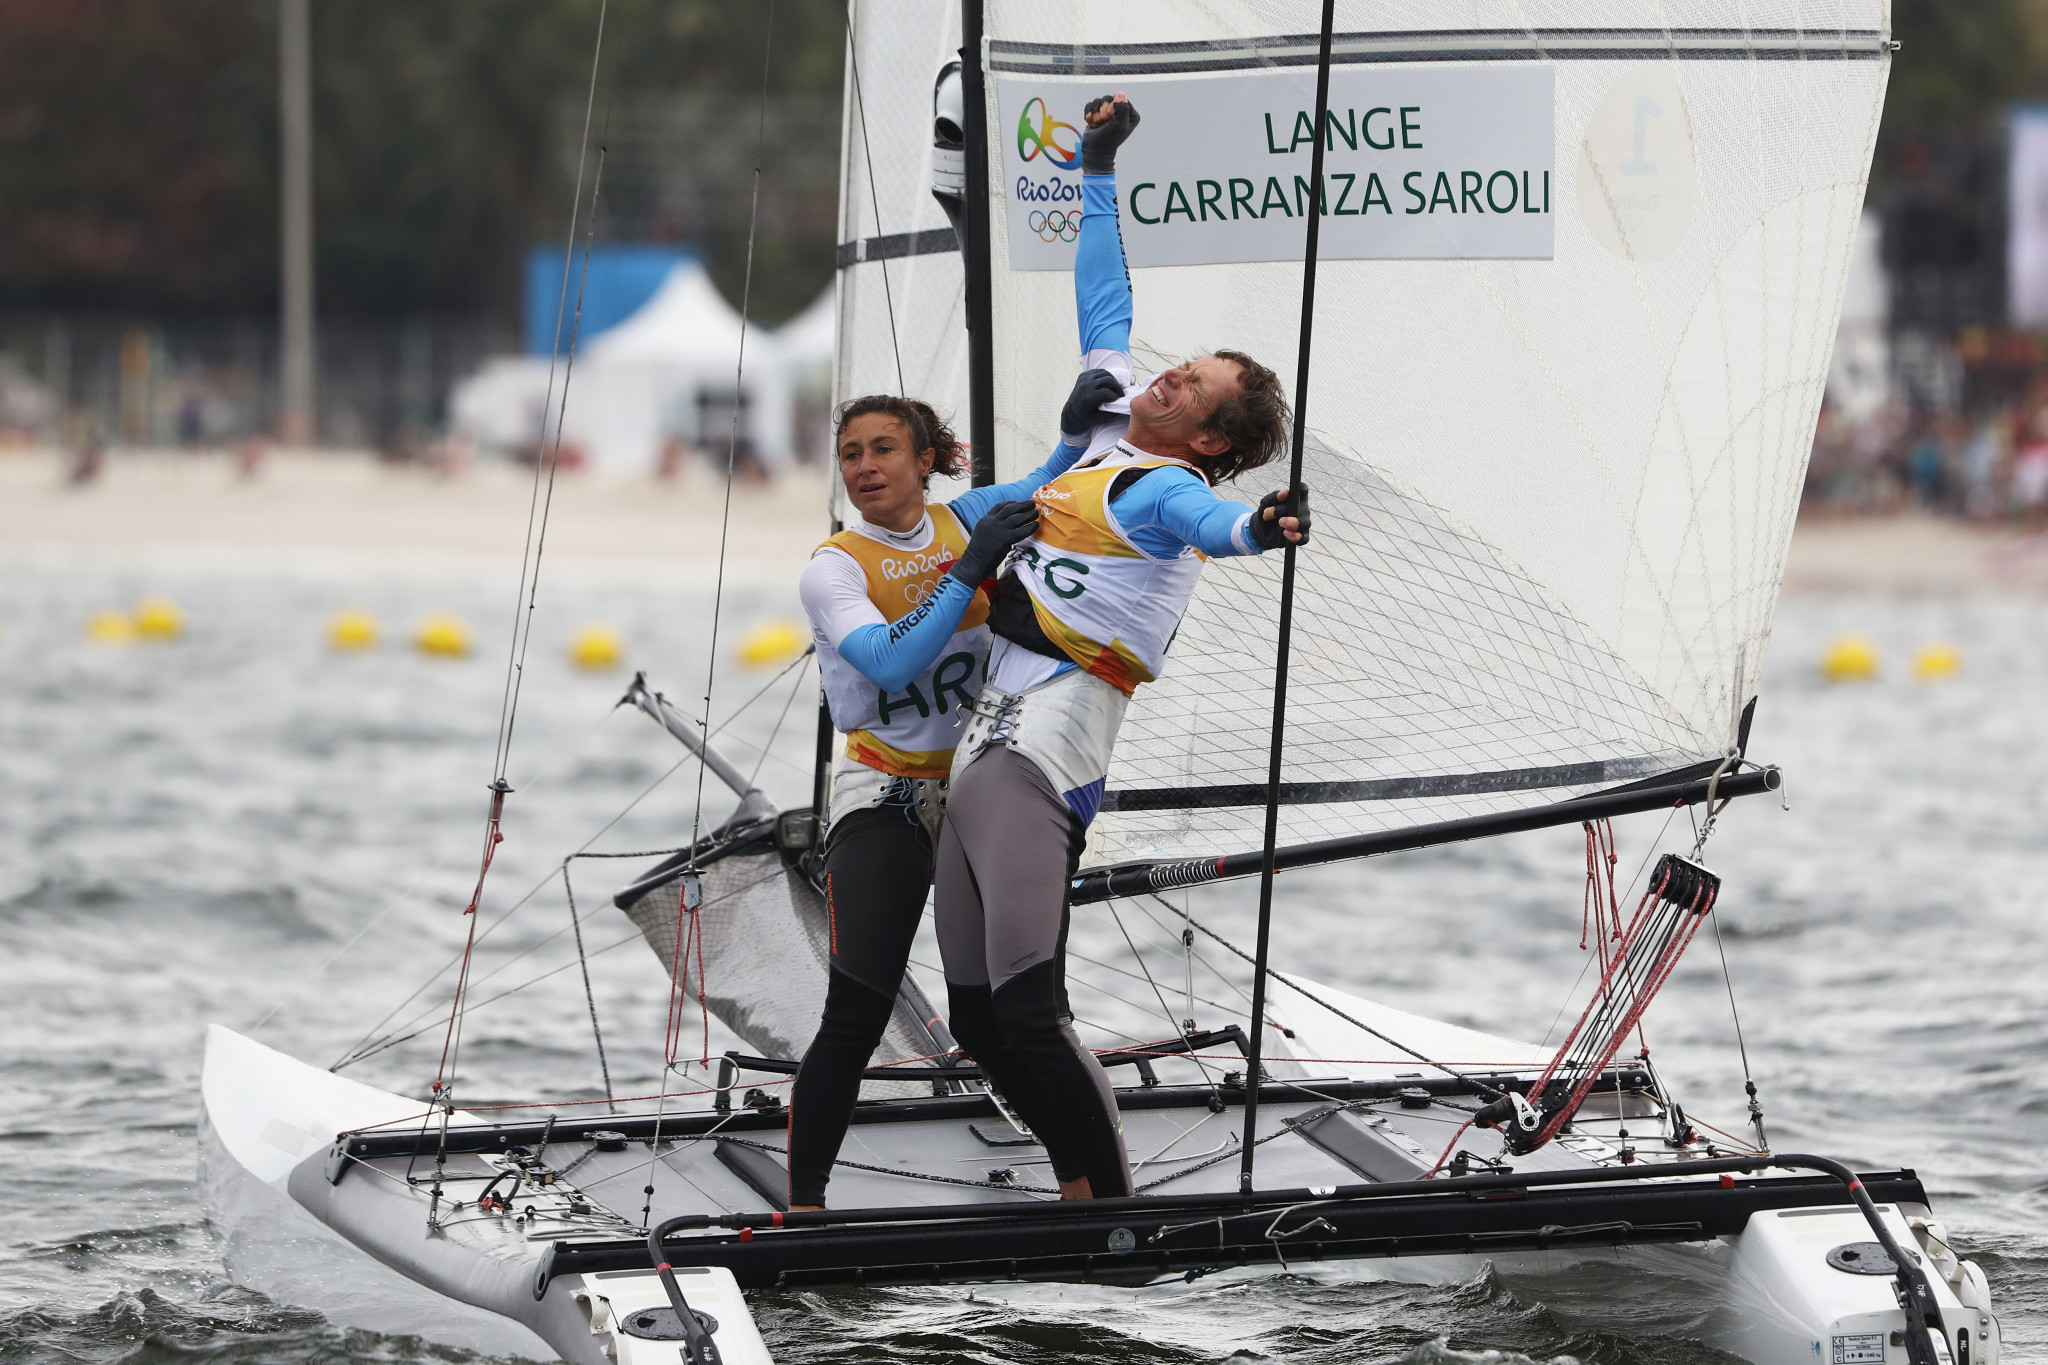 Olympic champions Santiago Lange and Cecilia Carranza Saroli lead the Nacra 17 class ©Getty Images